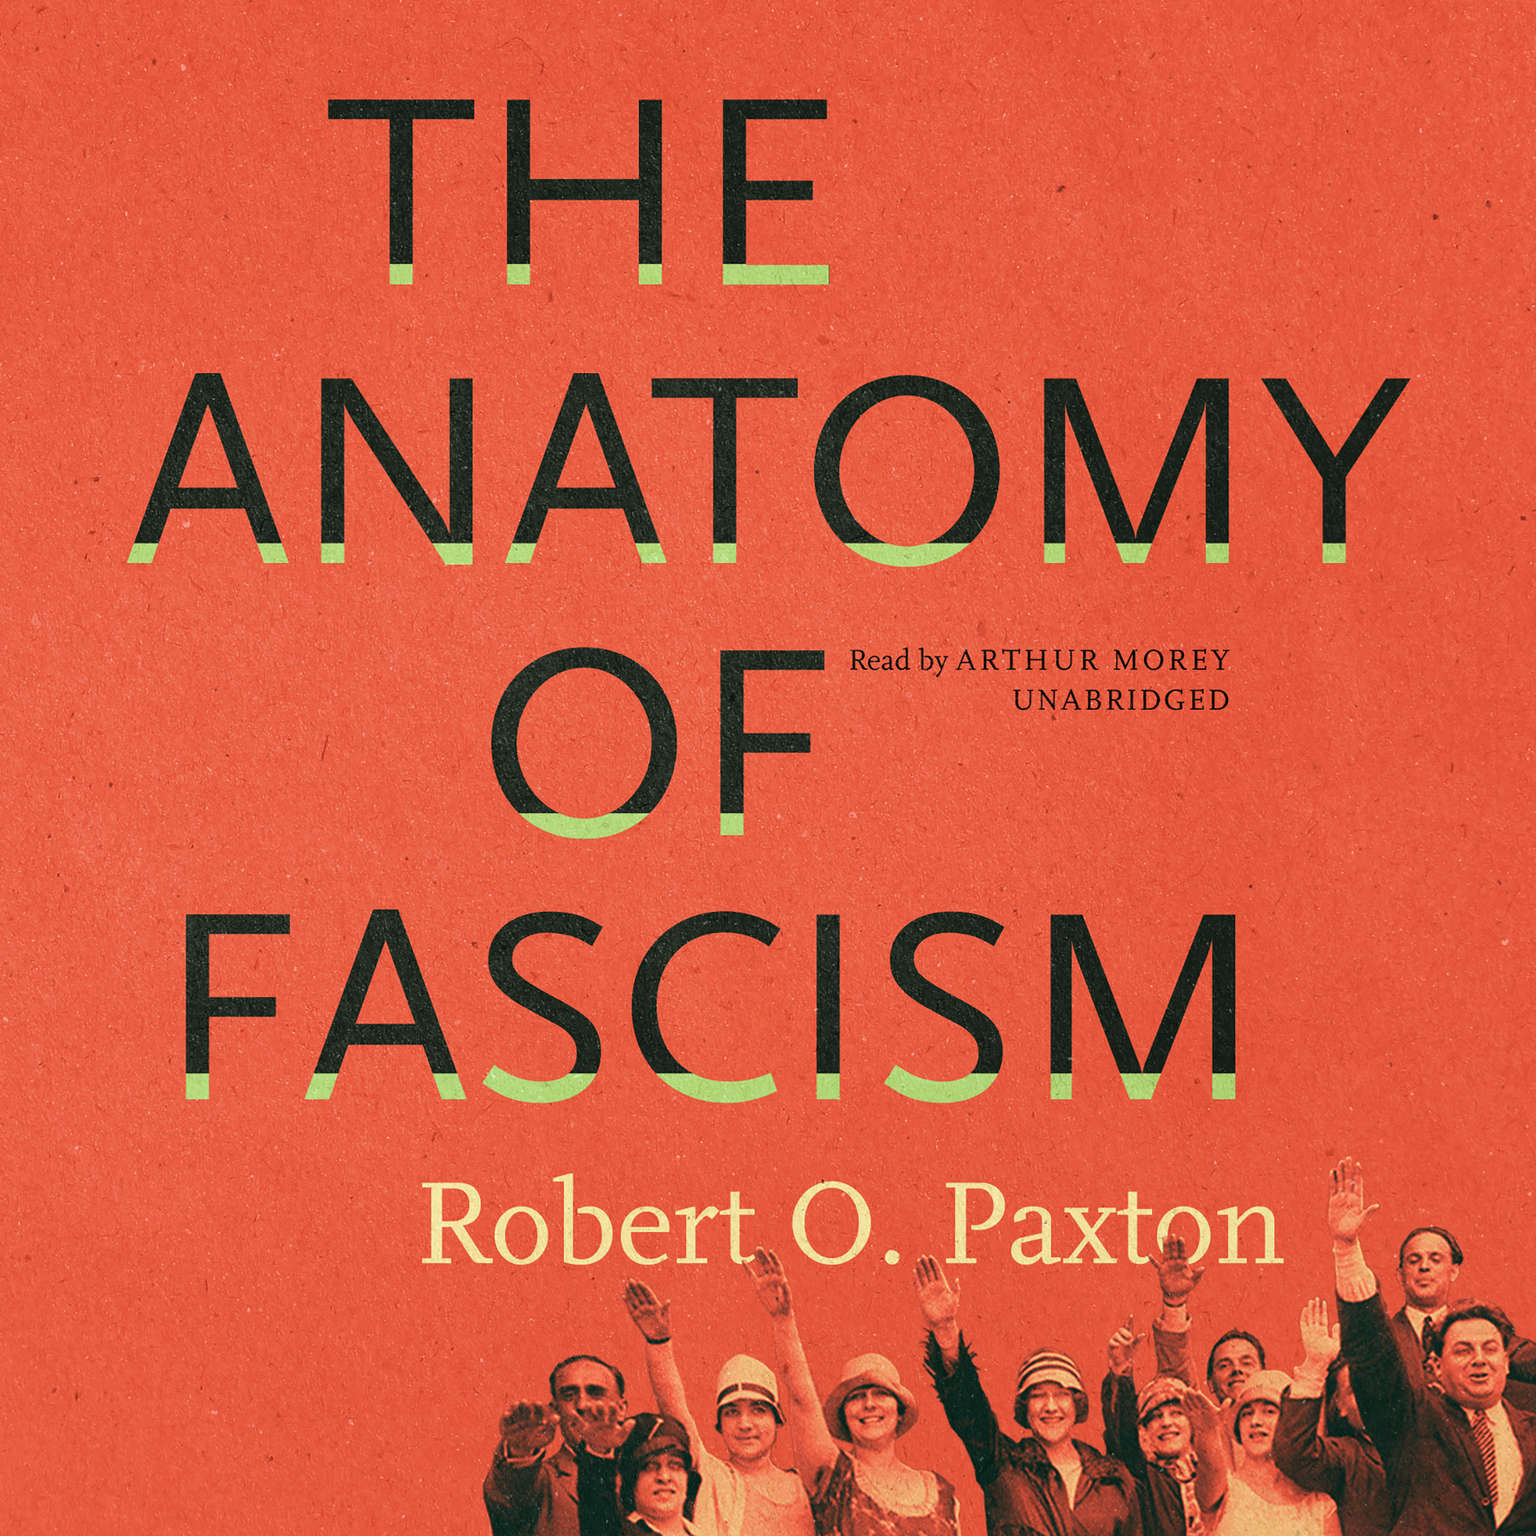 The Anatomy of Fascism - Audiobook | Listen Instantly!